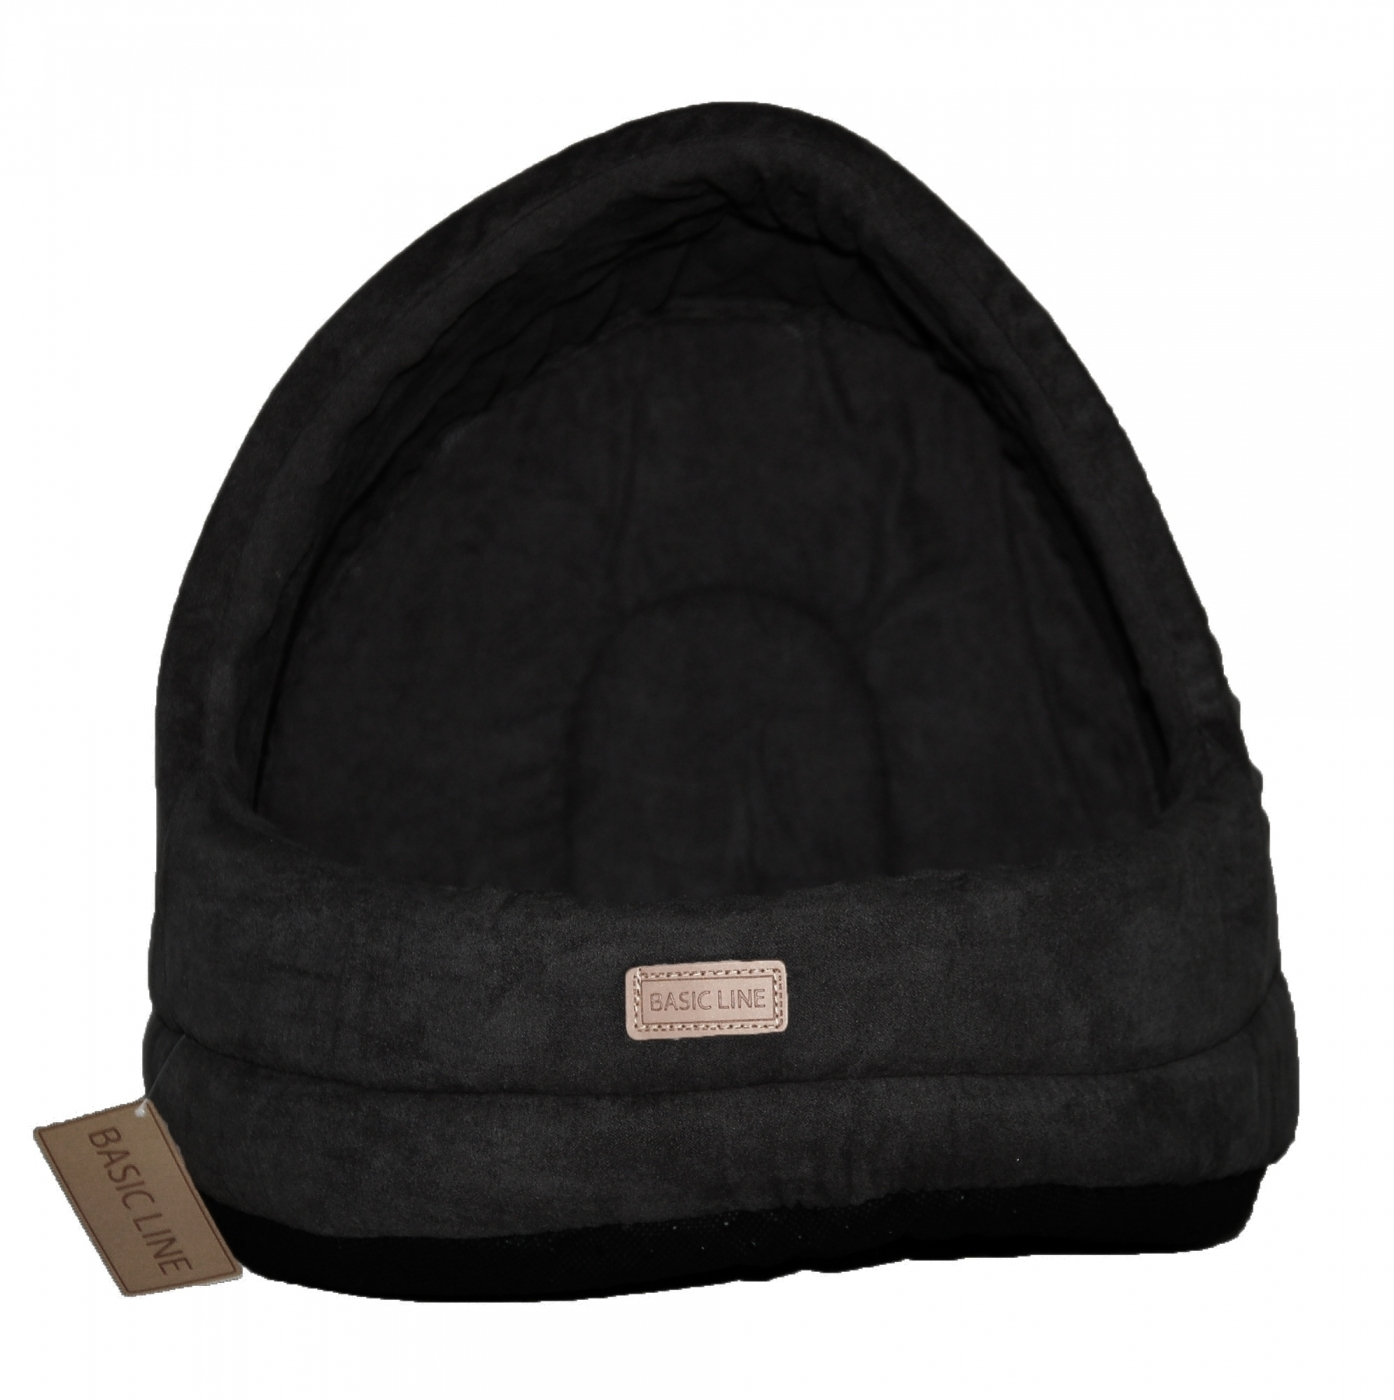 CAPAZO SUEDE DOME BASIC LINE CAT NEGRO